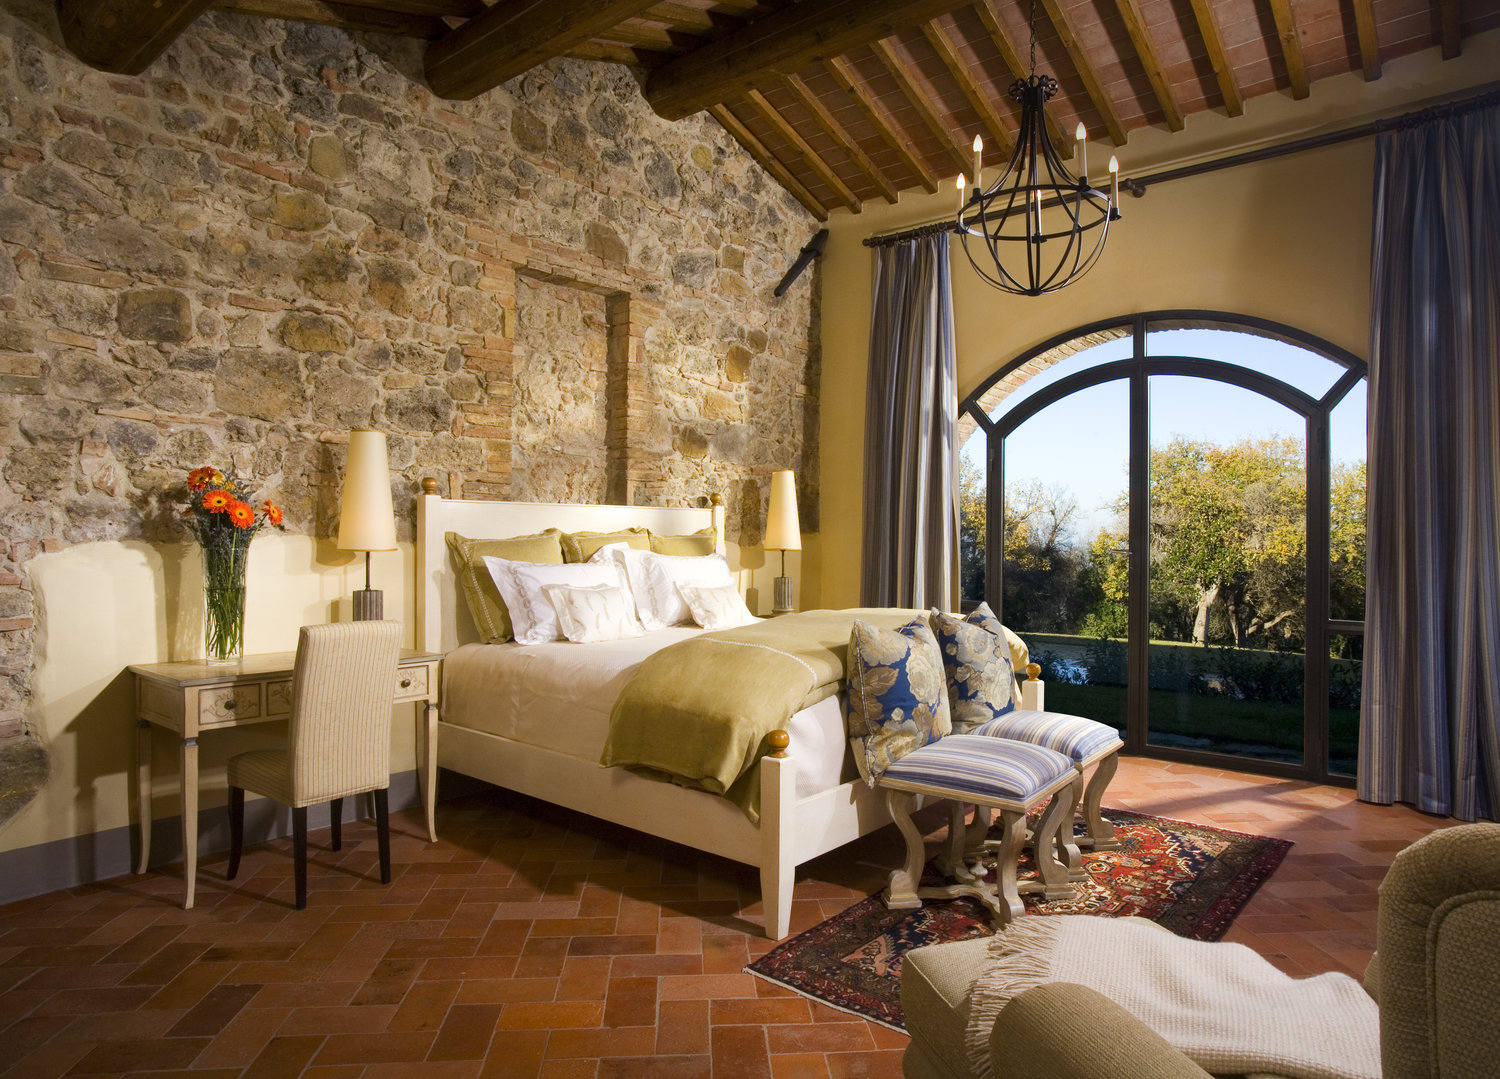 tuscany-italy-paradiso-junior-master-bedroom.jpg